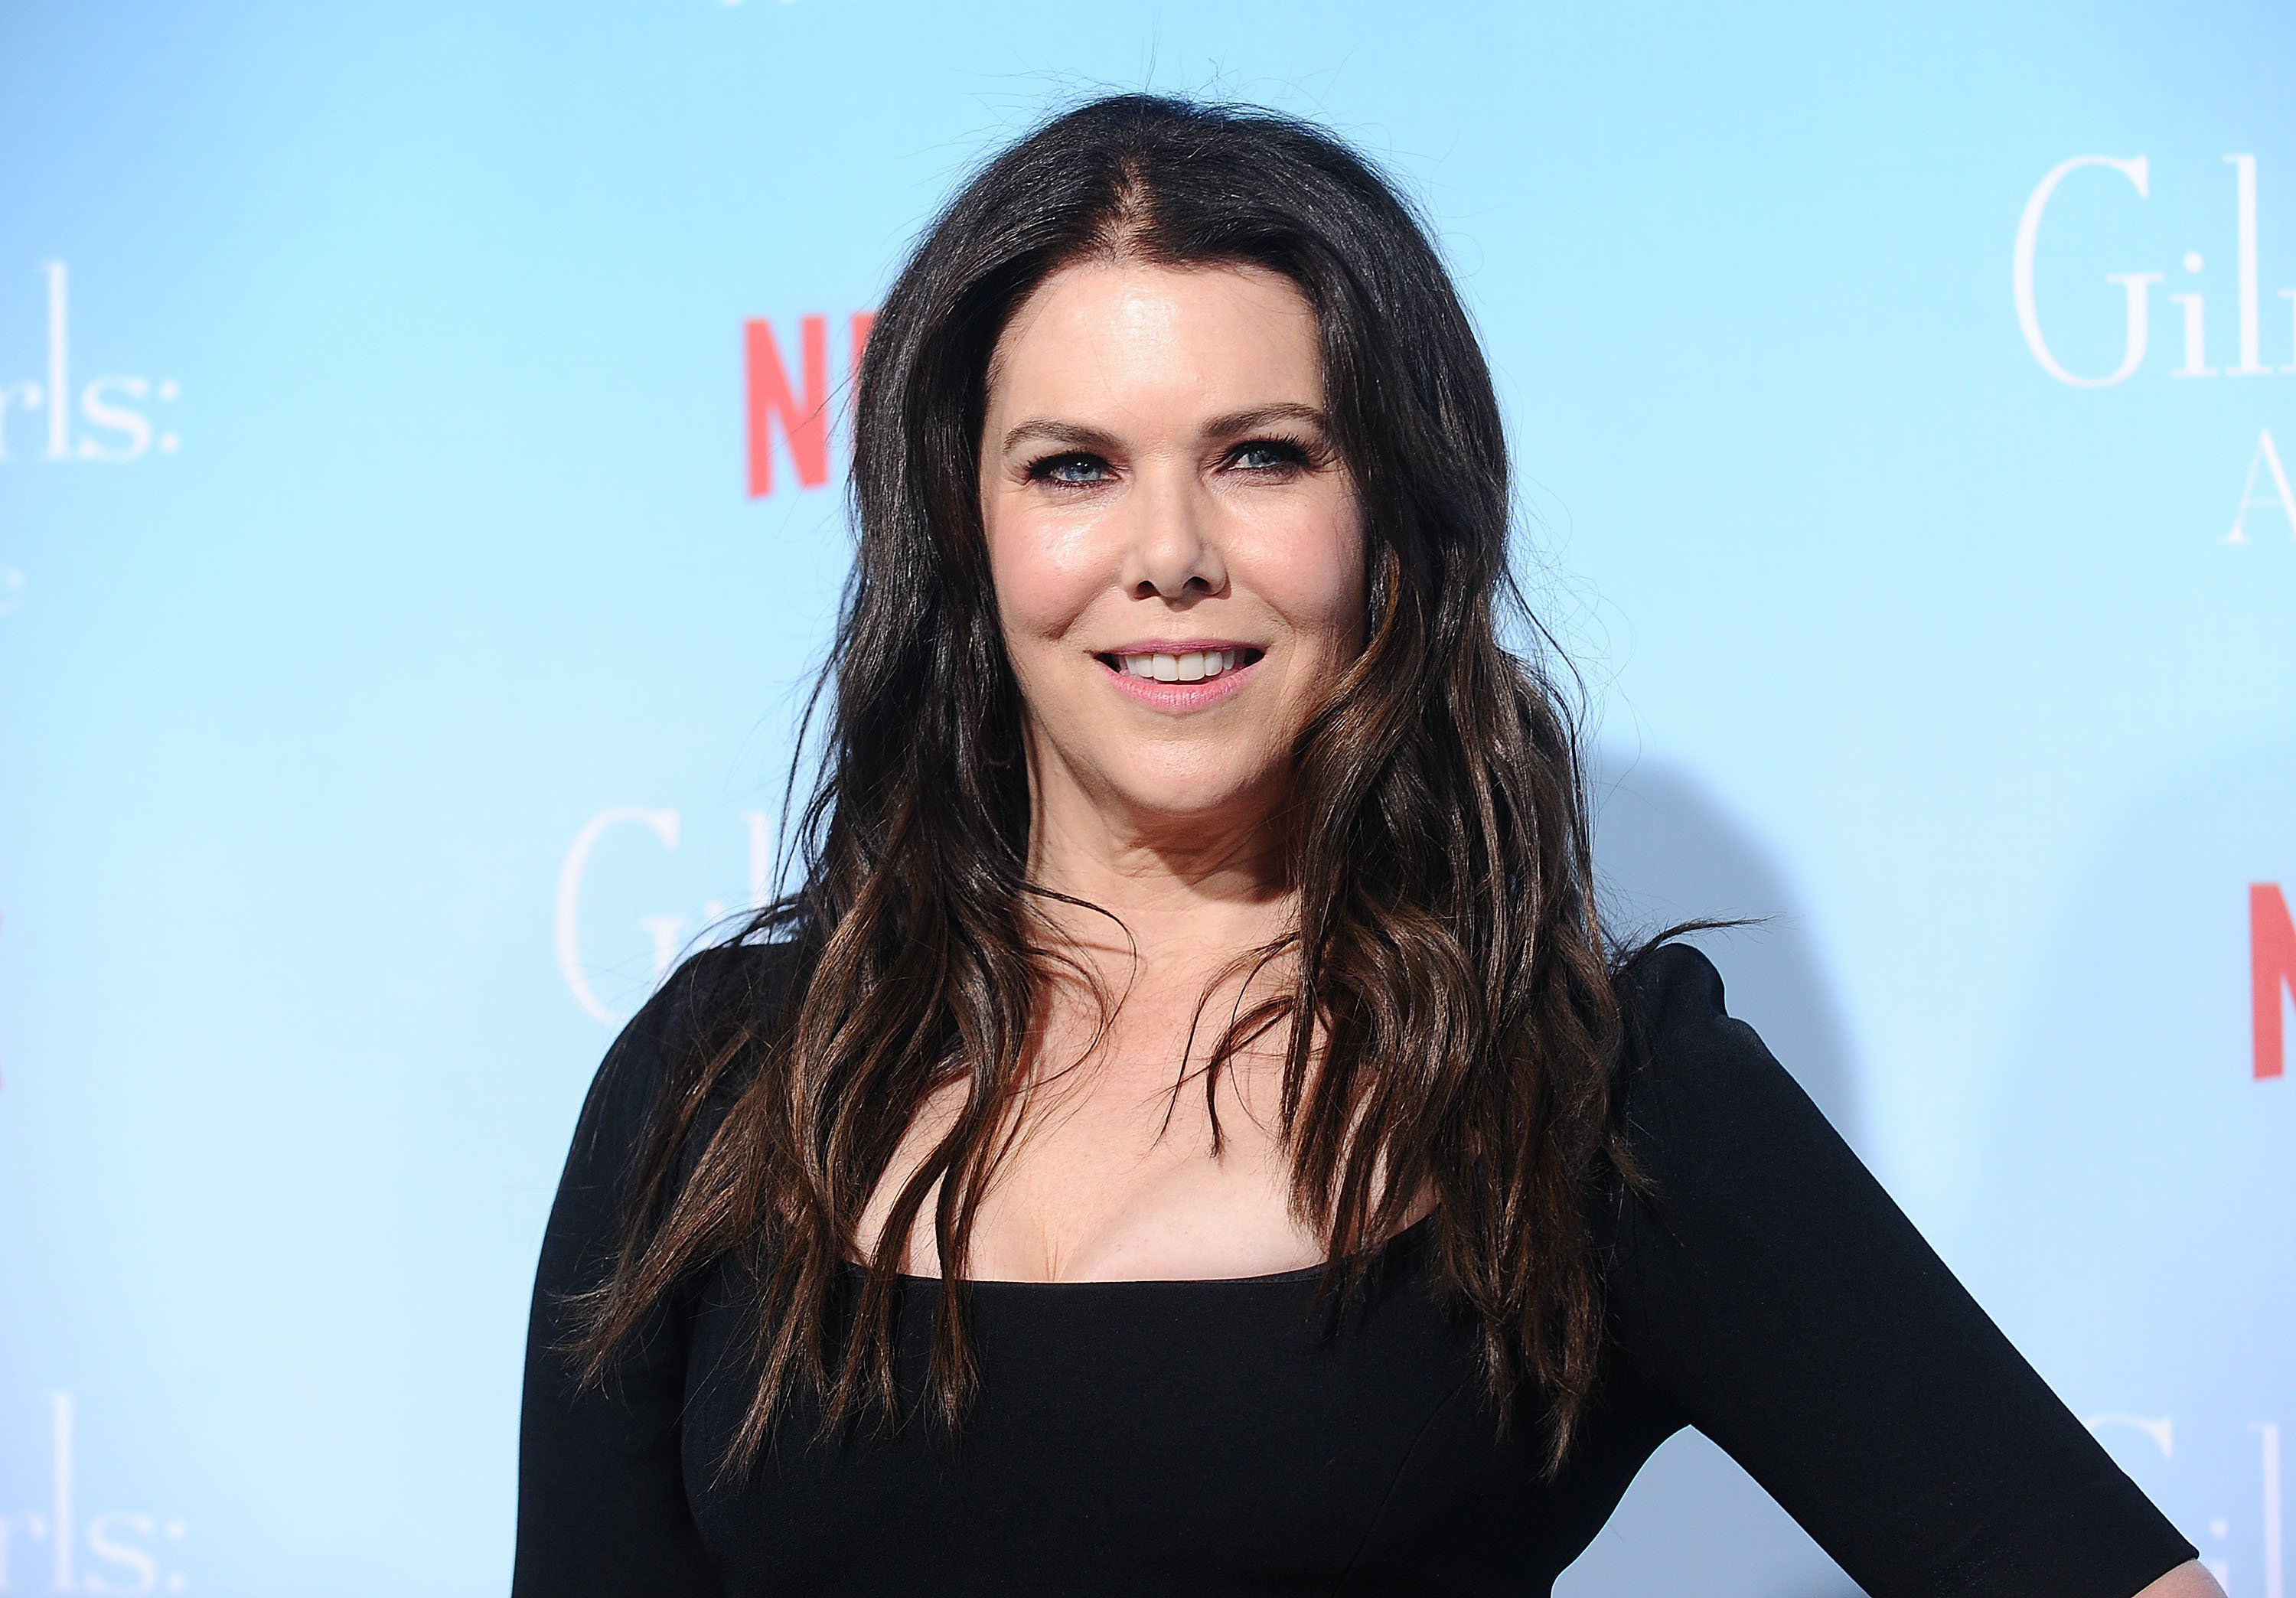 LOS ANGELES, CA - NOVEMBER 18:  Actress Lauren Graham attends the premiere of 'Gilmore Girls: A Year in the Life' at Regency Bruin Theatre on November 18, 2016 in Los Angeles, California.  (Photo by Jason LaVeris/FilmMagic)